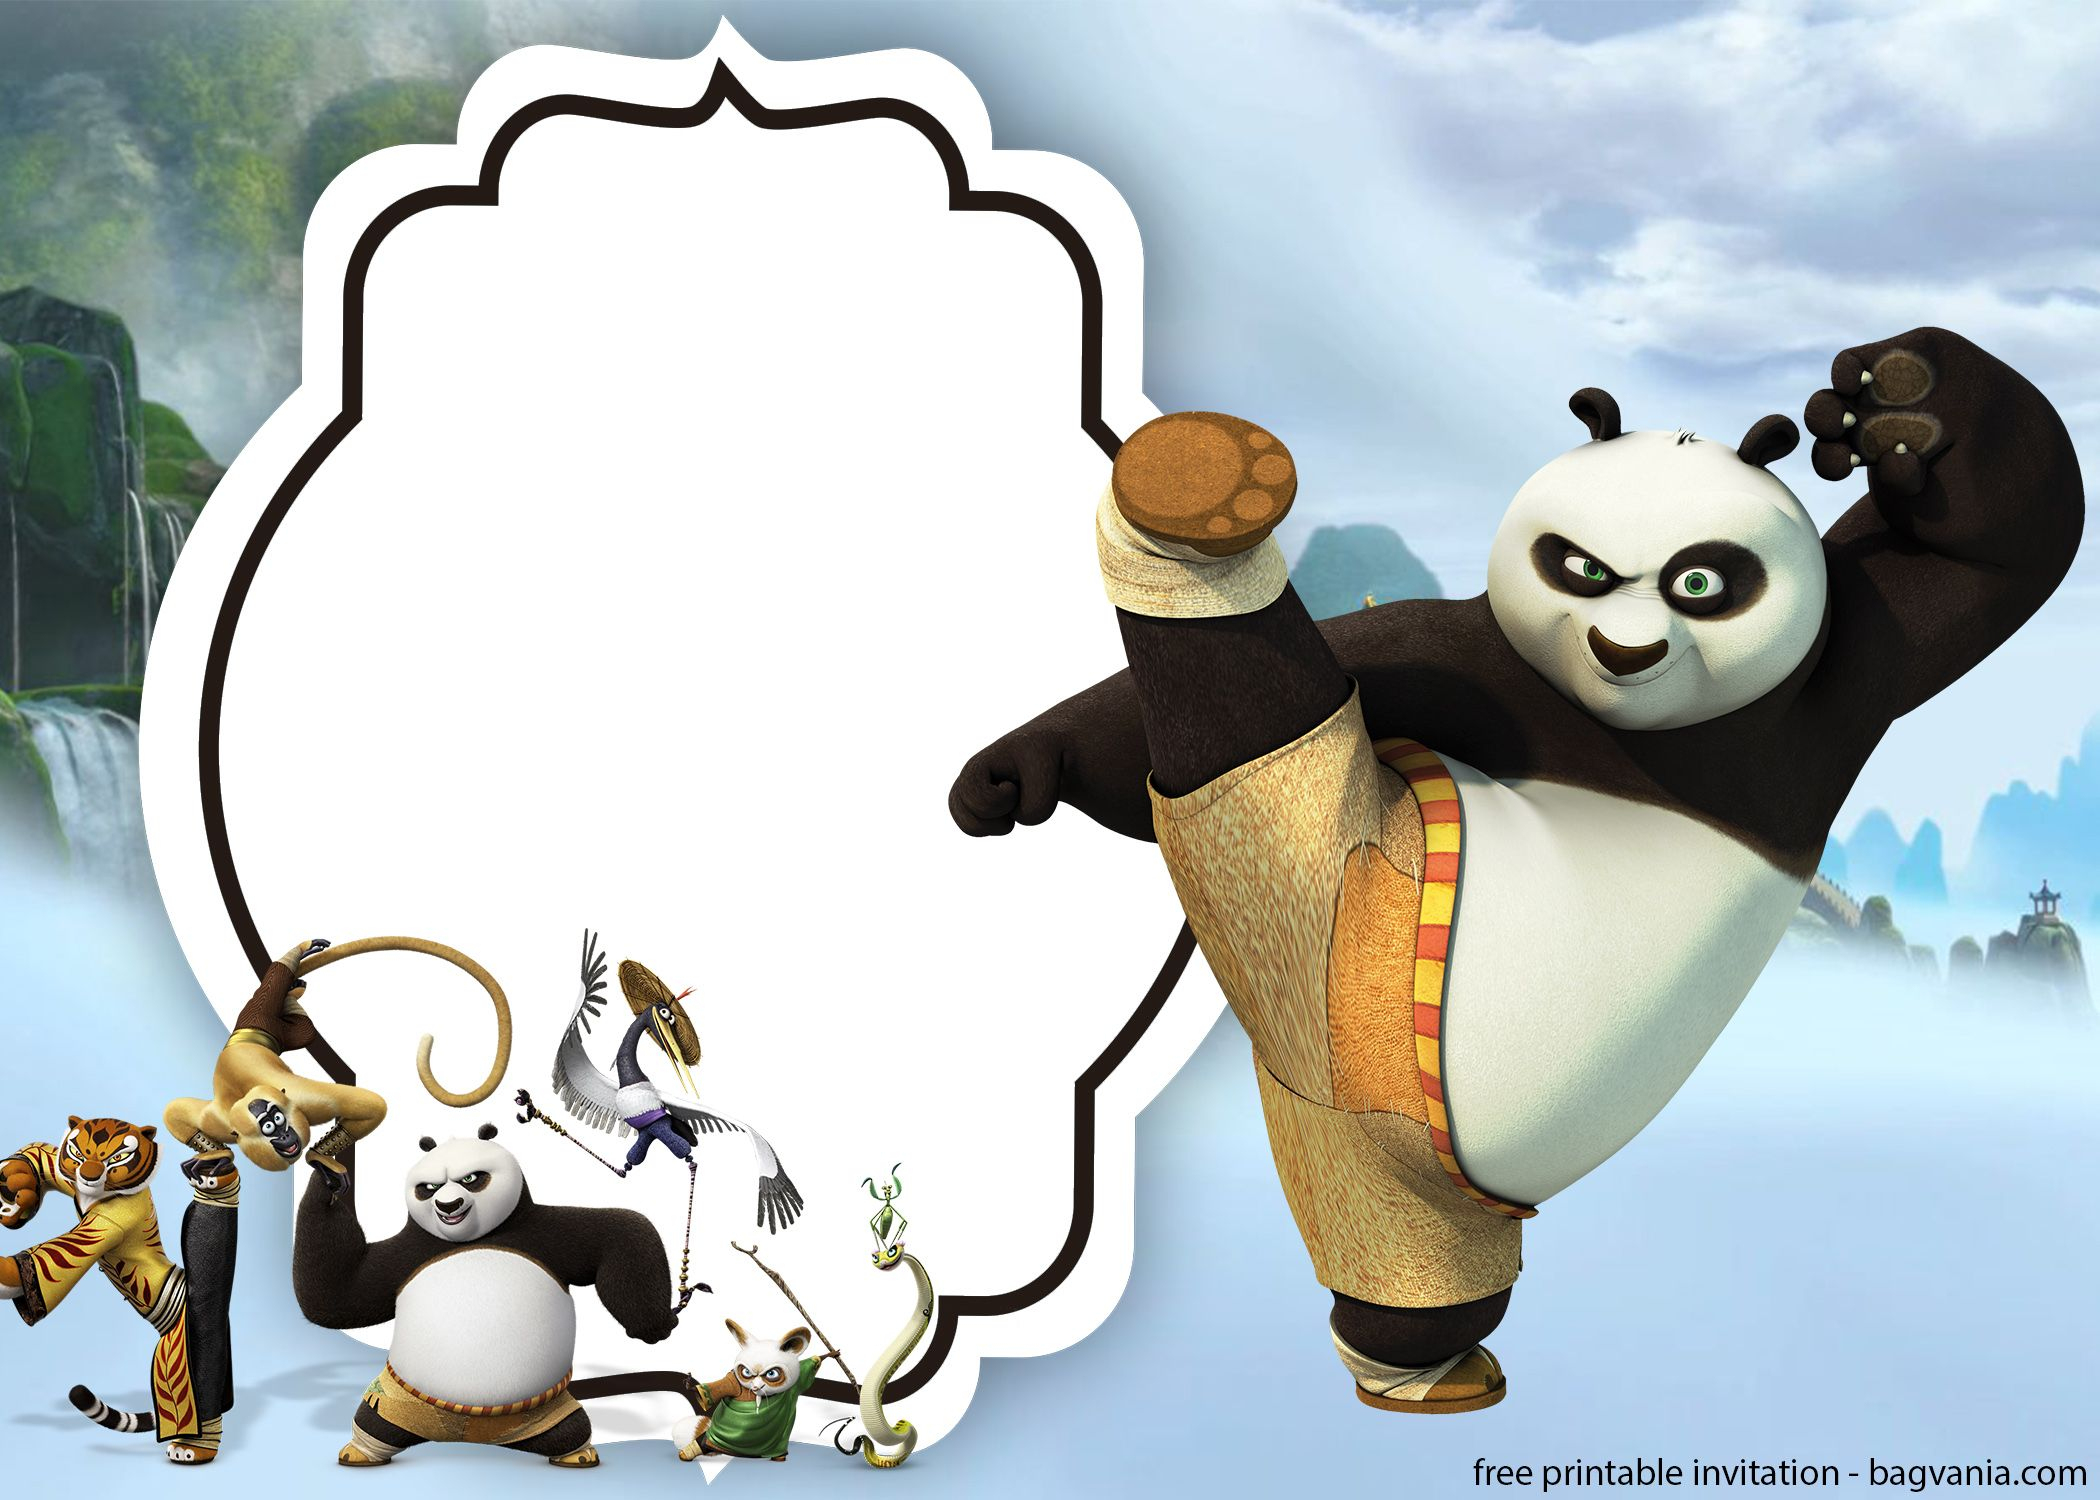 Free Kungfu Panda Invitations Templates | Bagvania Invitation | Free - Panda Bear Invitations Free Printable